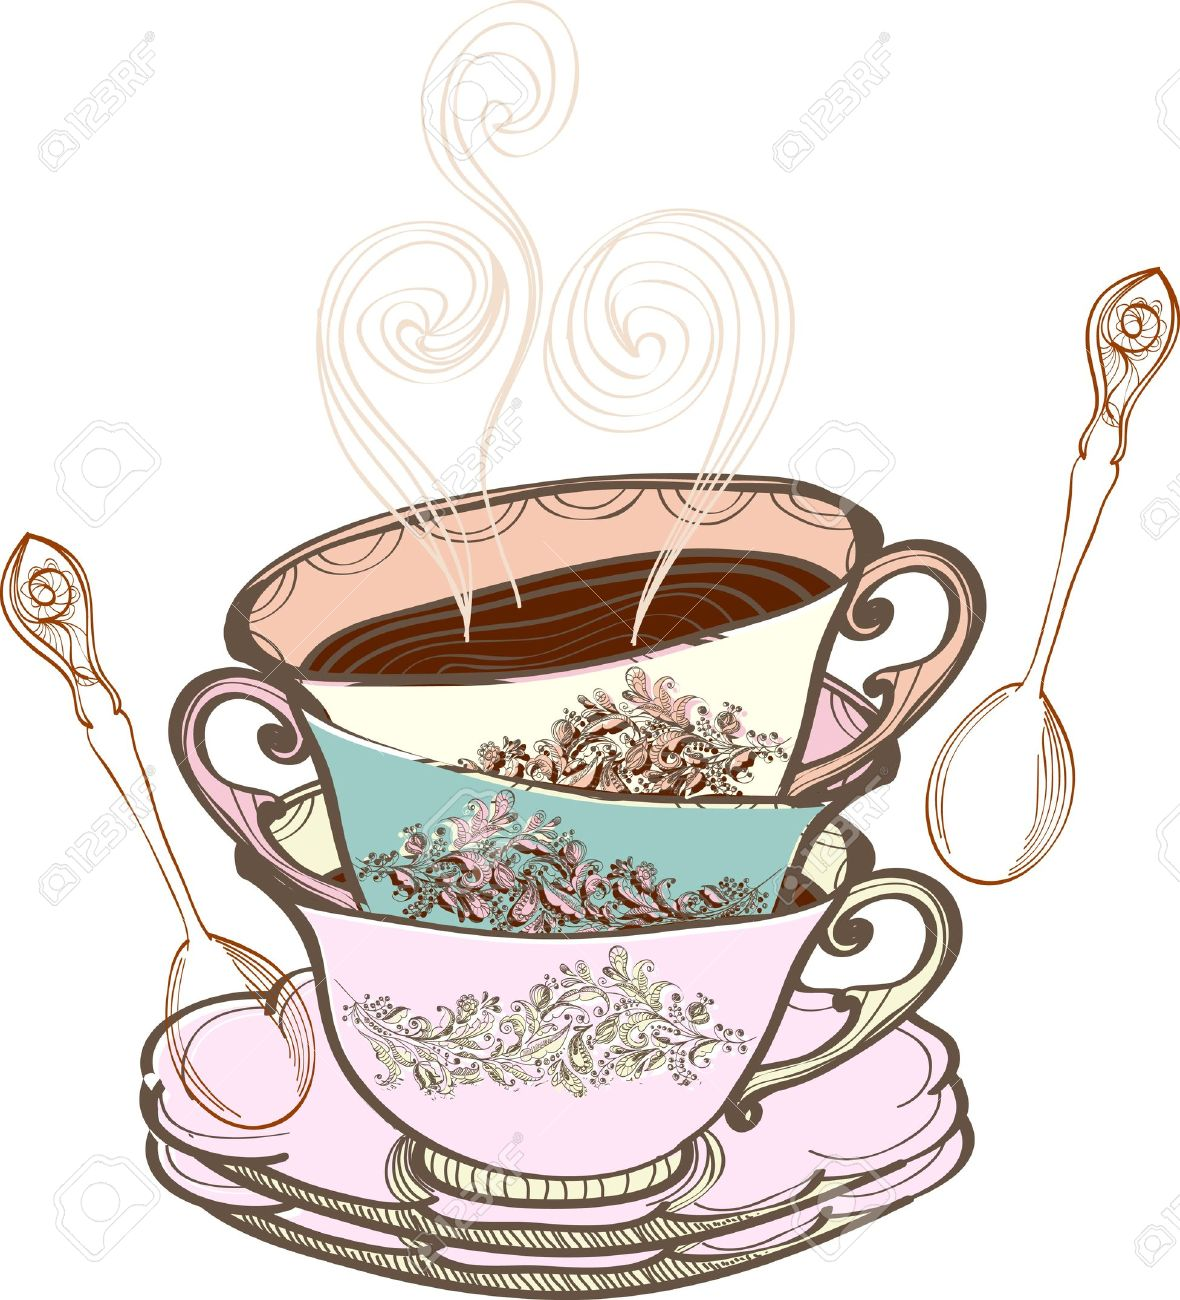 Vintage afternoon tea clipart 5 » Clipart Station.